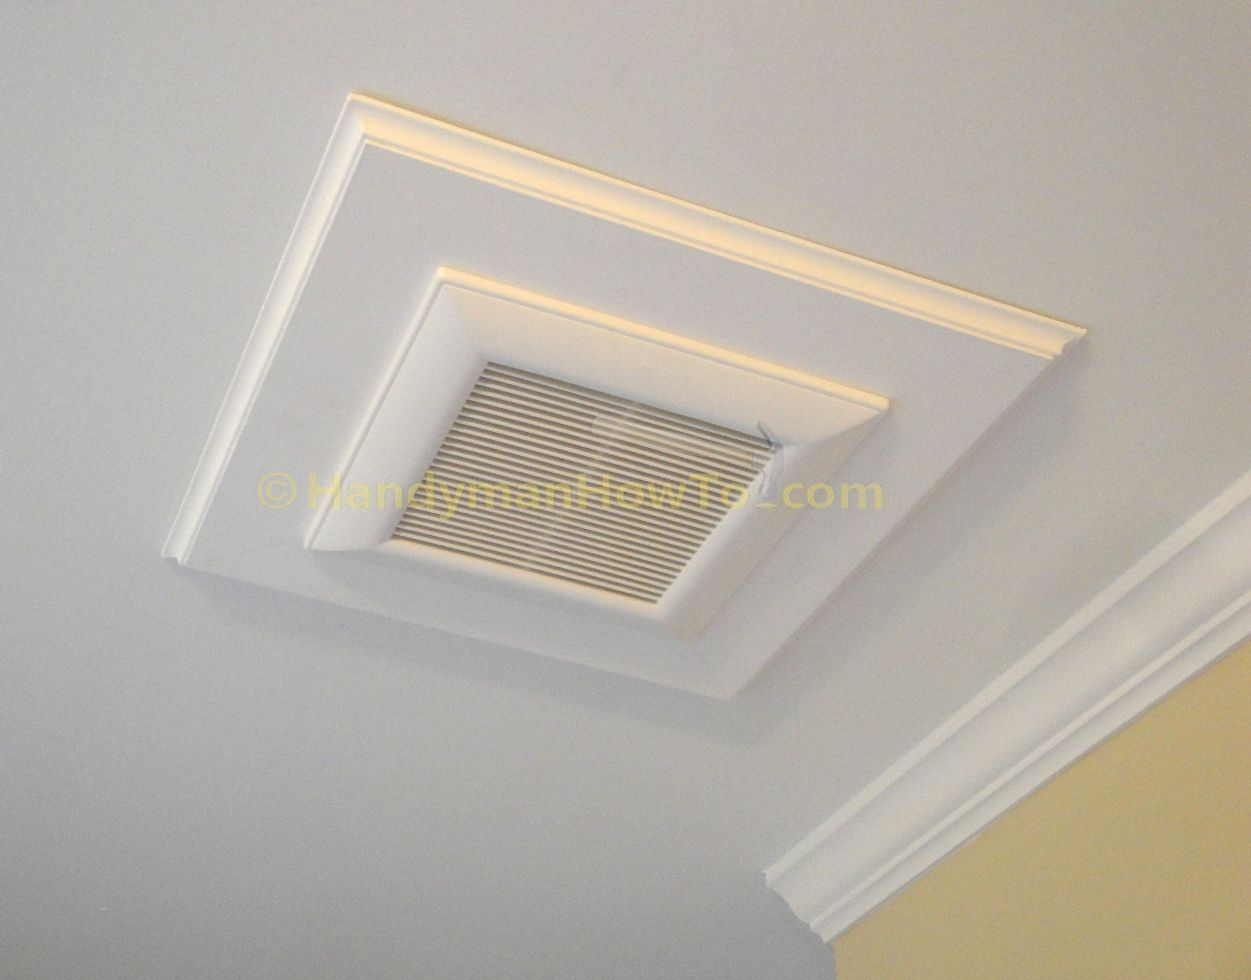 Bathroom Vent Fan Decorative Wood Trim To Conceal A Gap In The